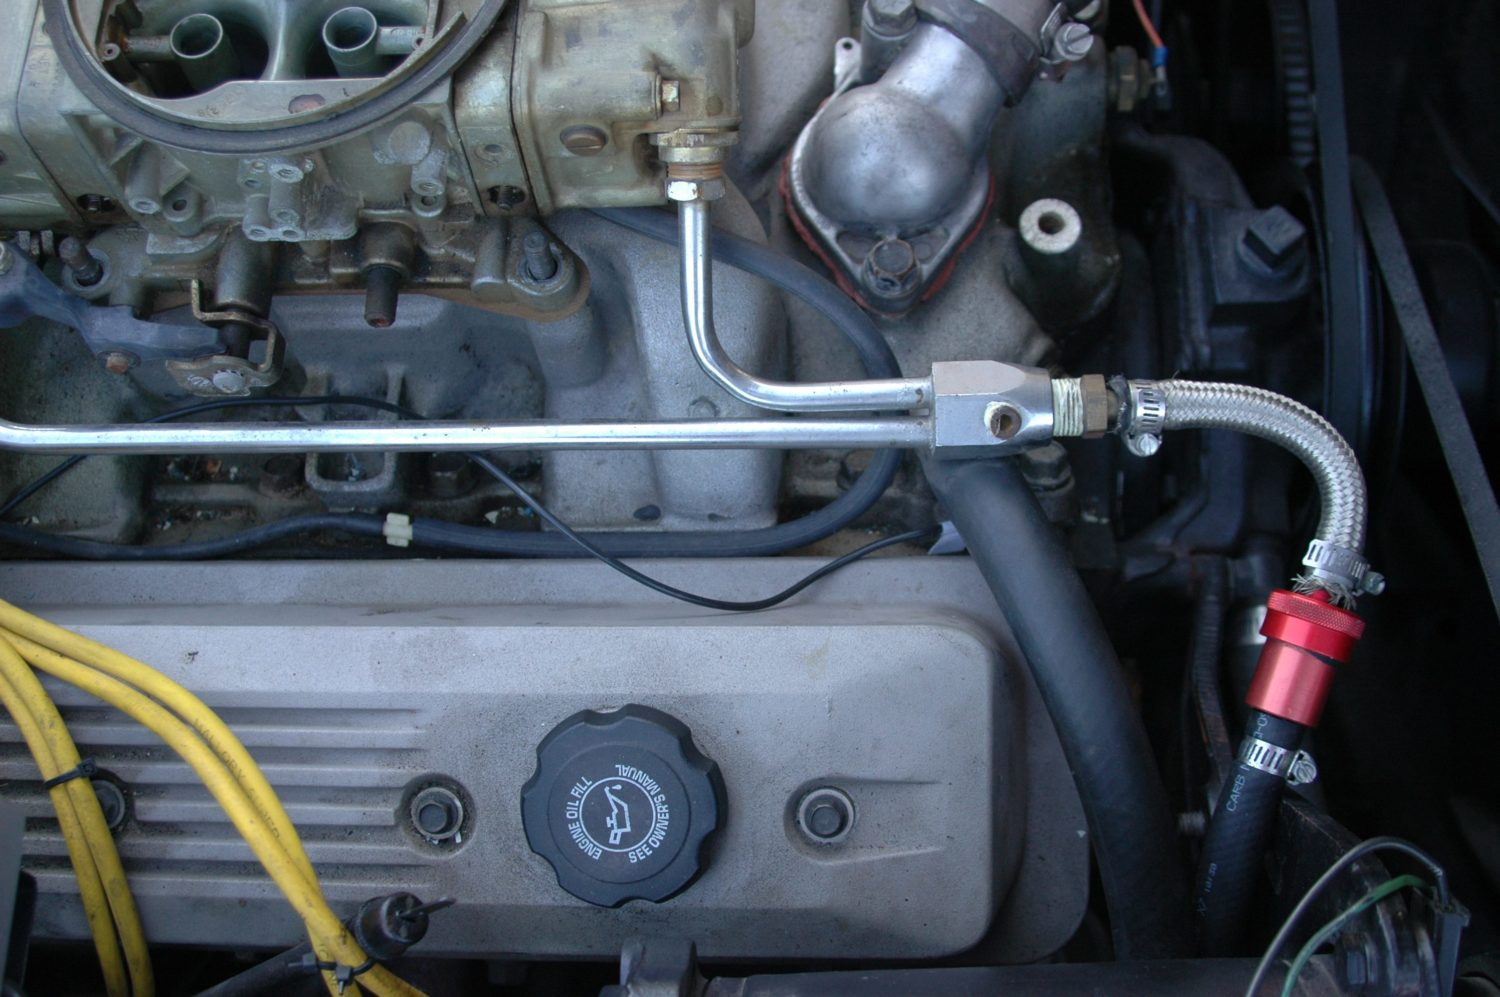 C3 Body Lift Cc Tech Hoist Wiring Harness A Fairly Typically Fuel Feed Arrangement If Your System Is In The Original Configuration Theres No Need To Remove It Prior Pulling